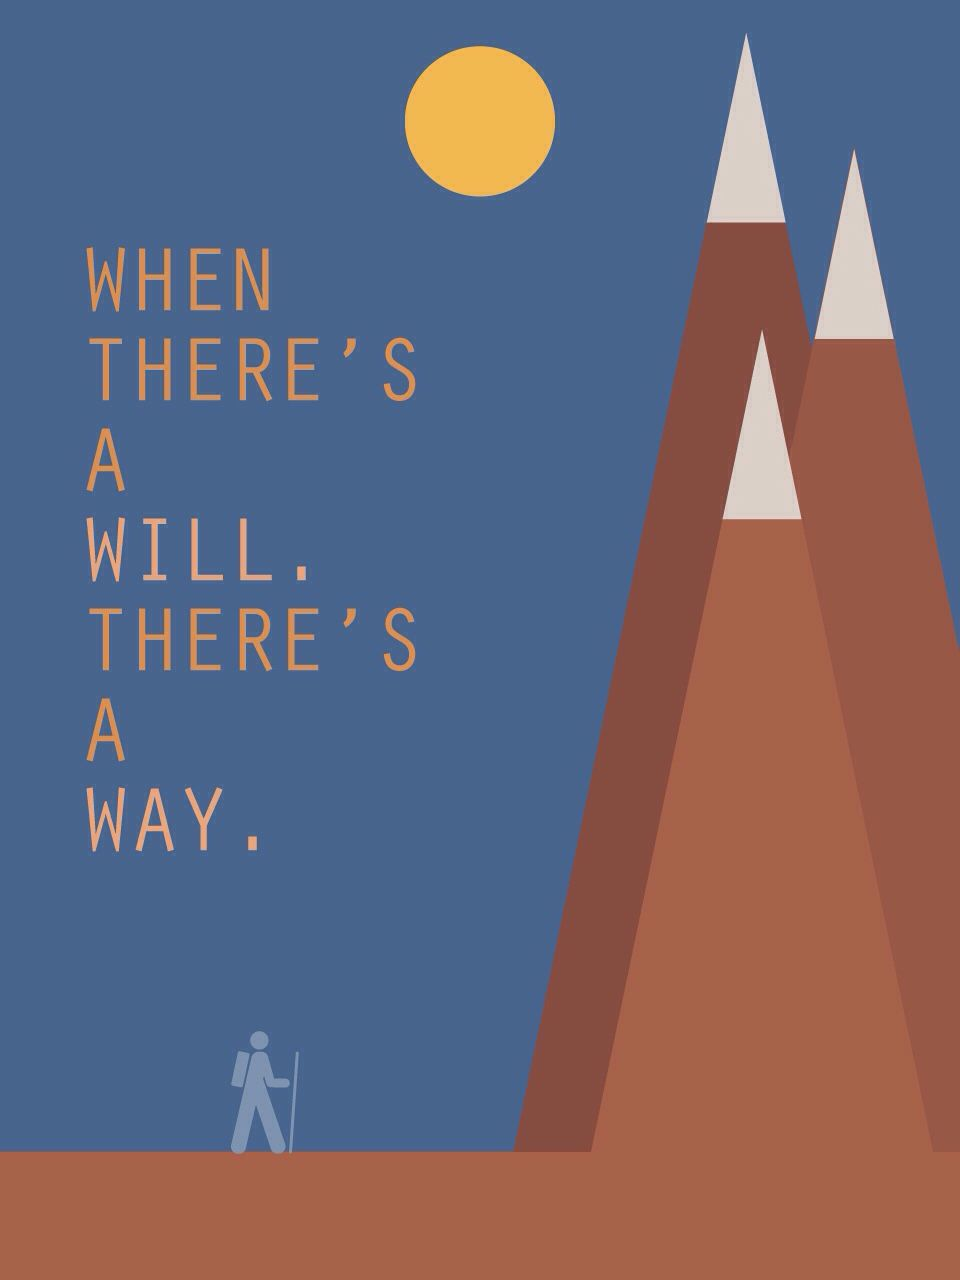 Graphic design poster quotes - Minimalist Design When There S A Will Quote Motivation Mountains Obstacle Poster